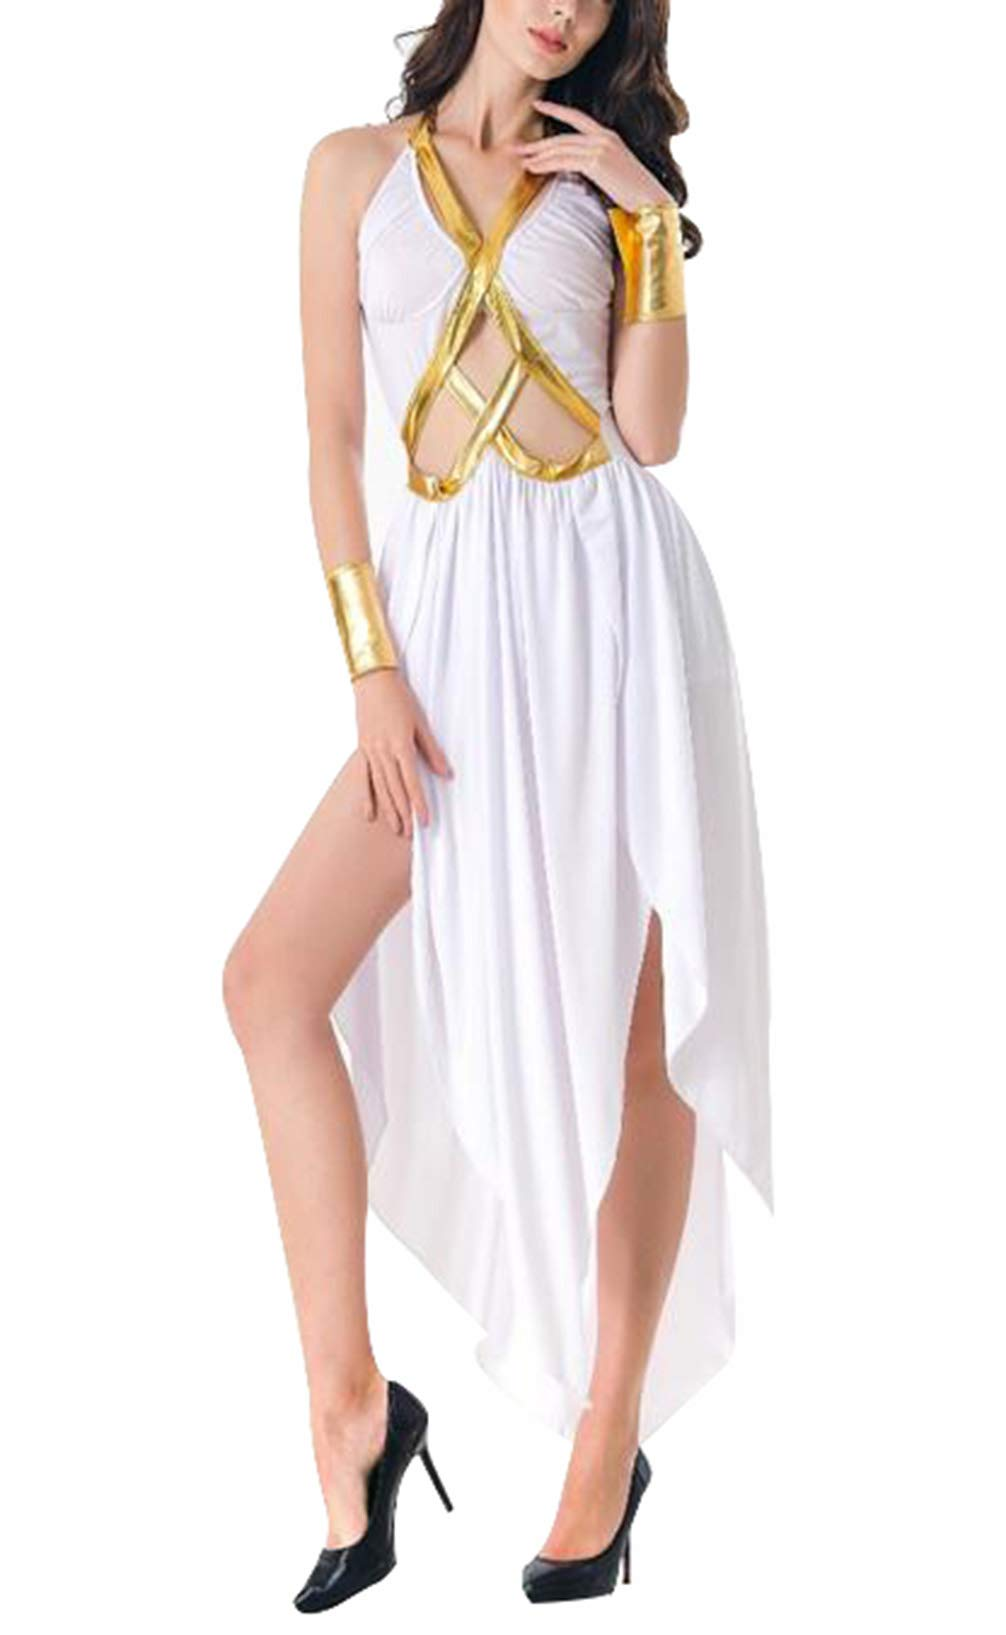 Seipe Halloween Adult Costume Apparel Elf Attire Greek Goddess Princess Outfits